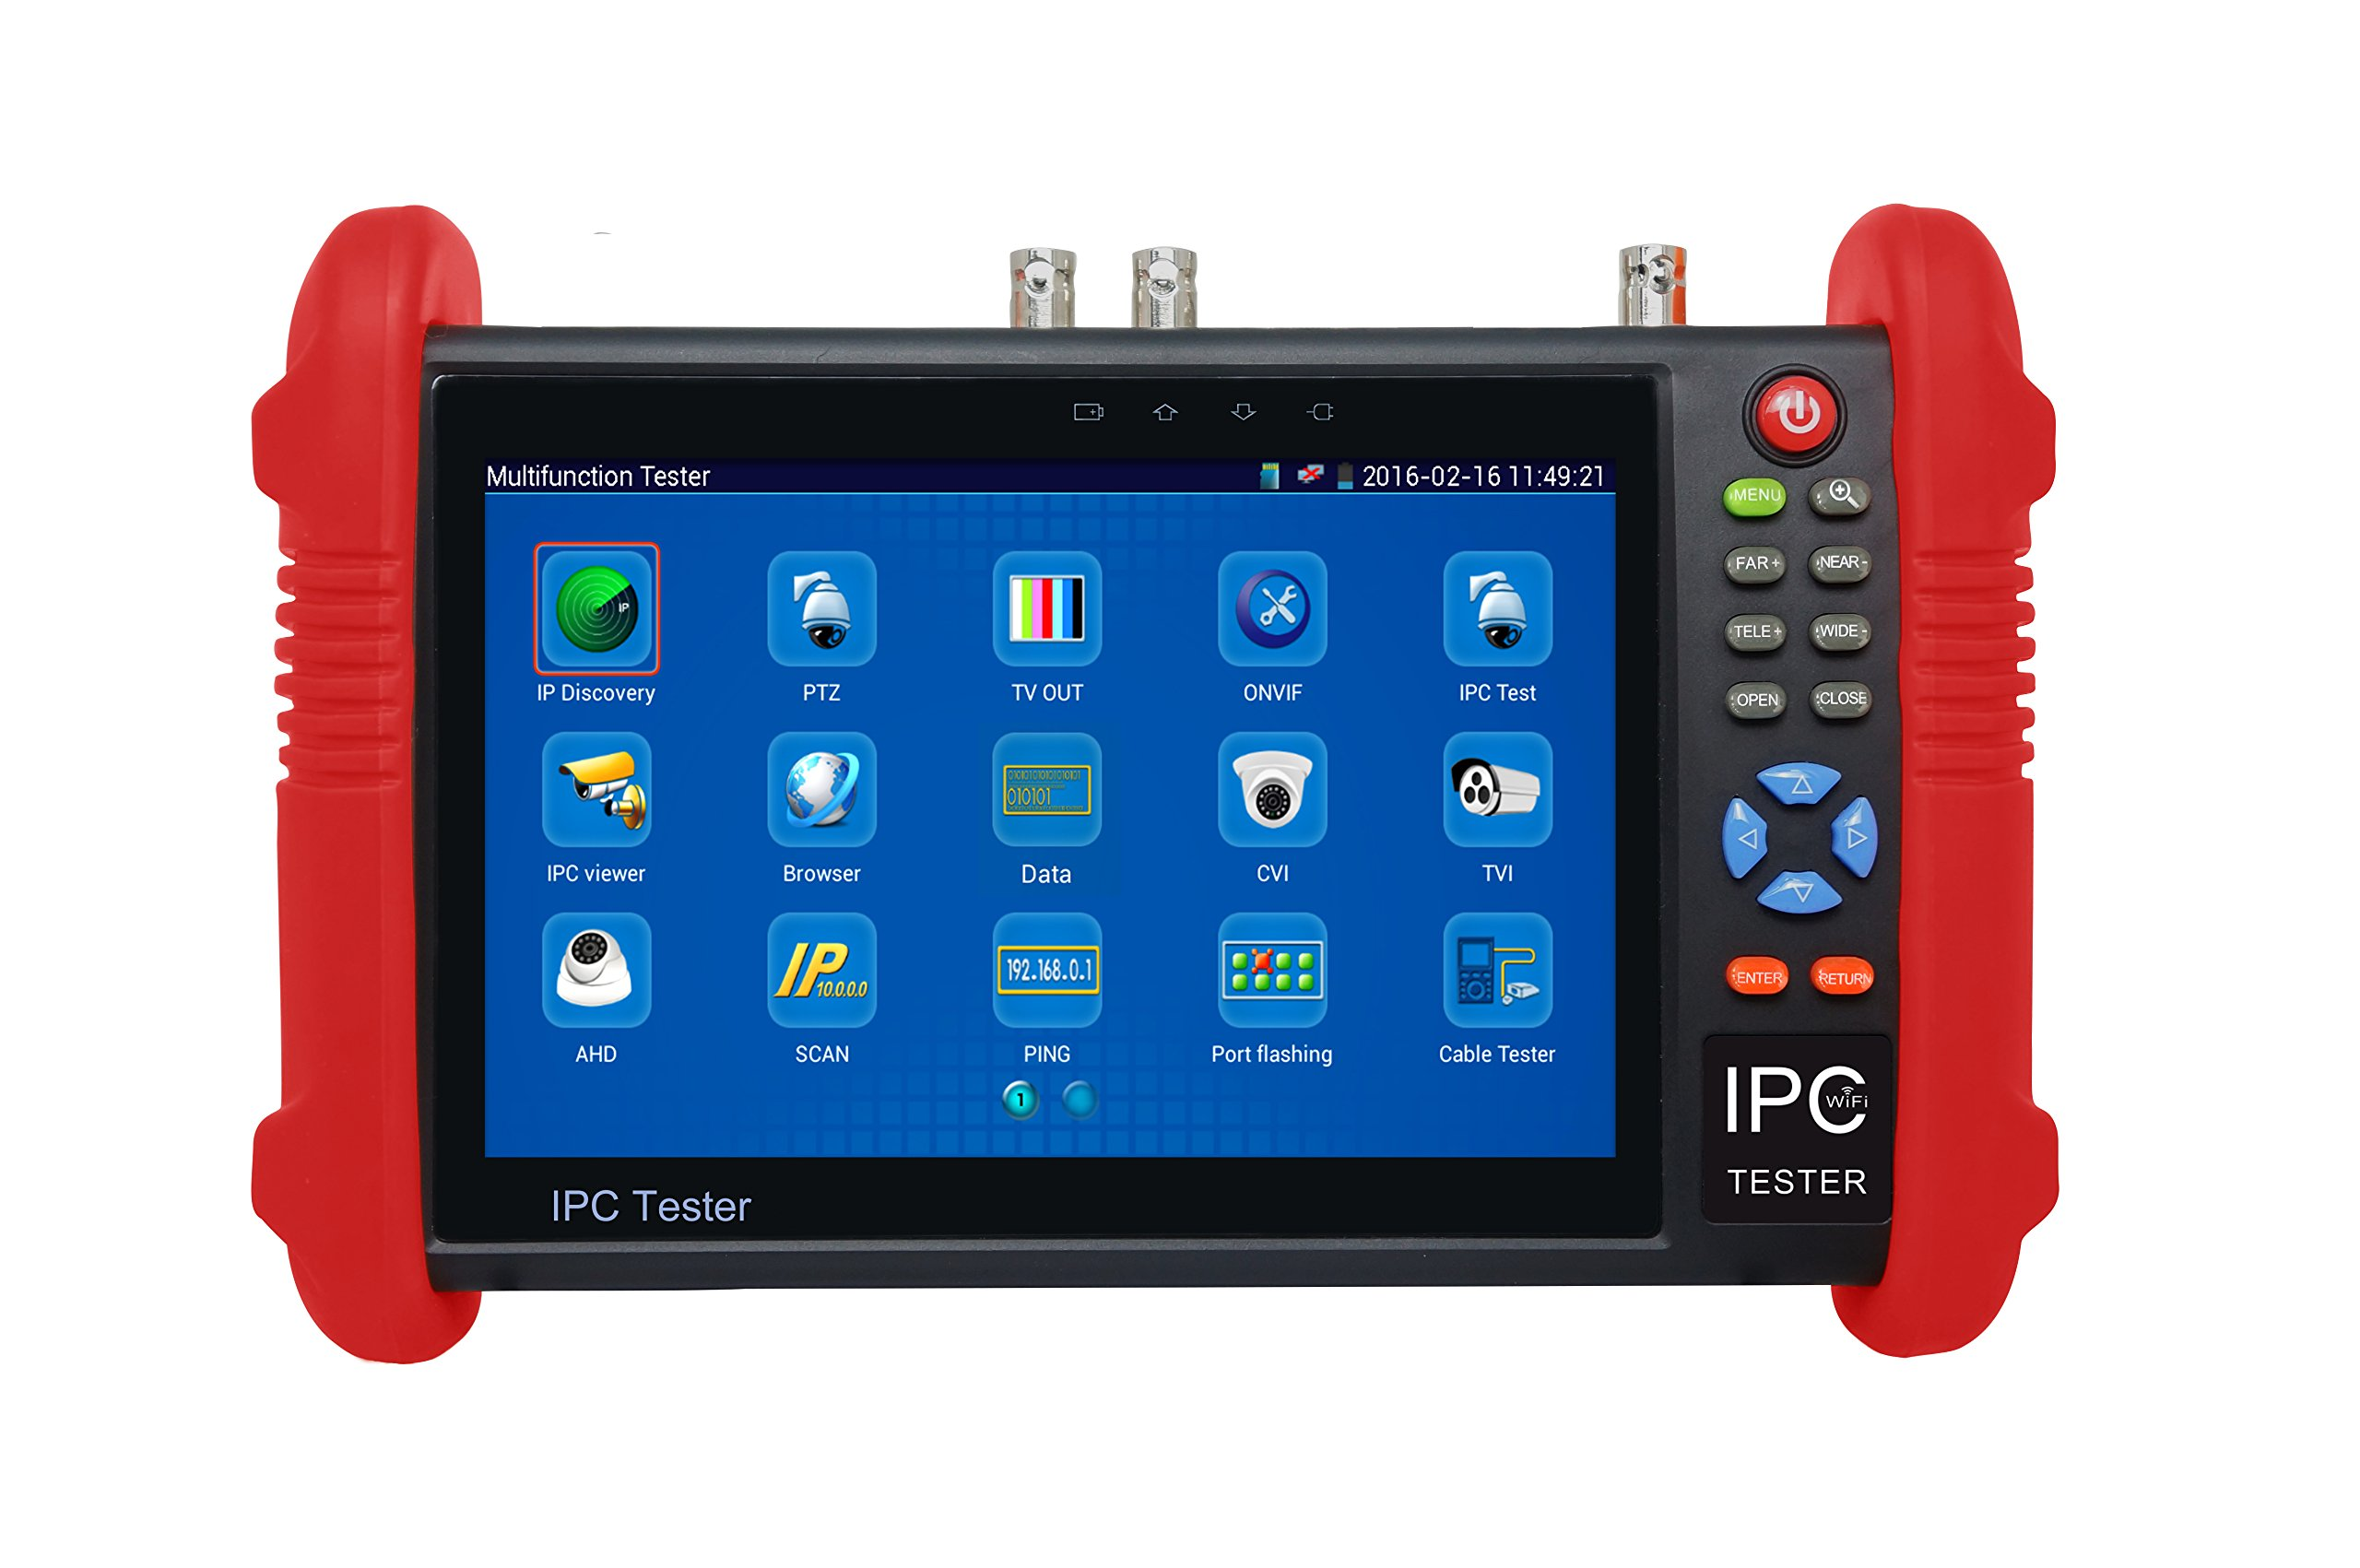 7 Inch Touch Screen 5 in 1 CCTV Tester Support Upt to 4K IP Camera & 720P/1080P/3.0mp/4.0mp/5.0 Megapixel AHD, TVI, CVI & CVBS Analog Camera, with Keyboard/IP Discovery/Rapid ONVIF/WiFi/APP by EVERSECU